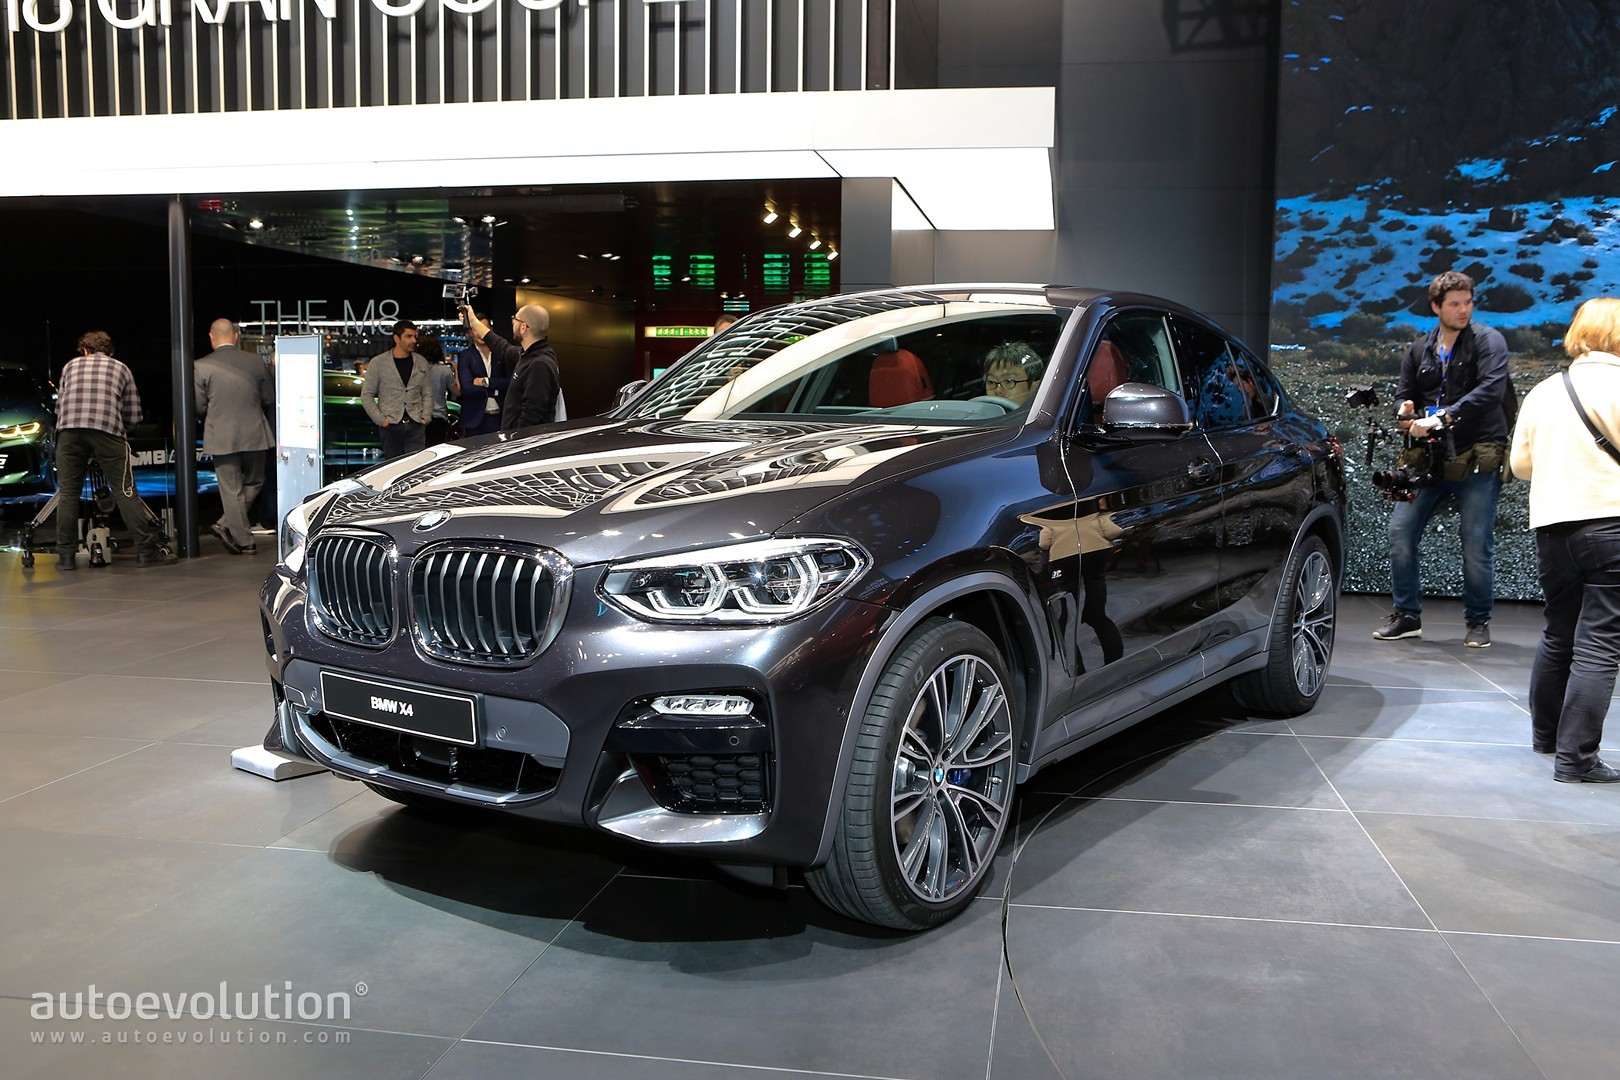 2019 Bmw X4 Looks All New In Geneva But Is It Hotter Than